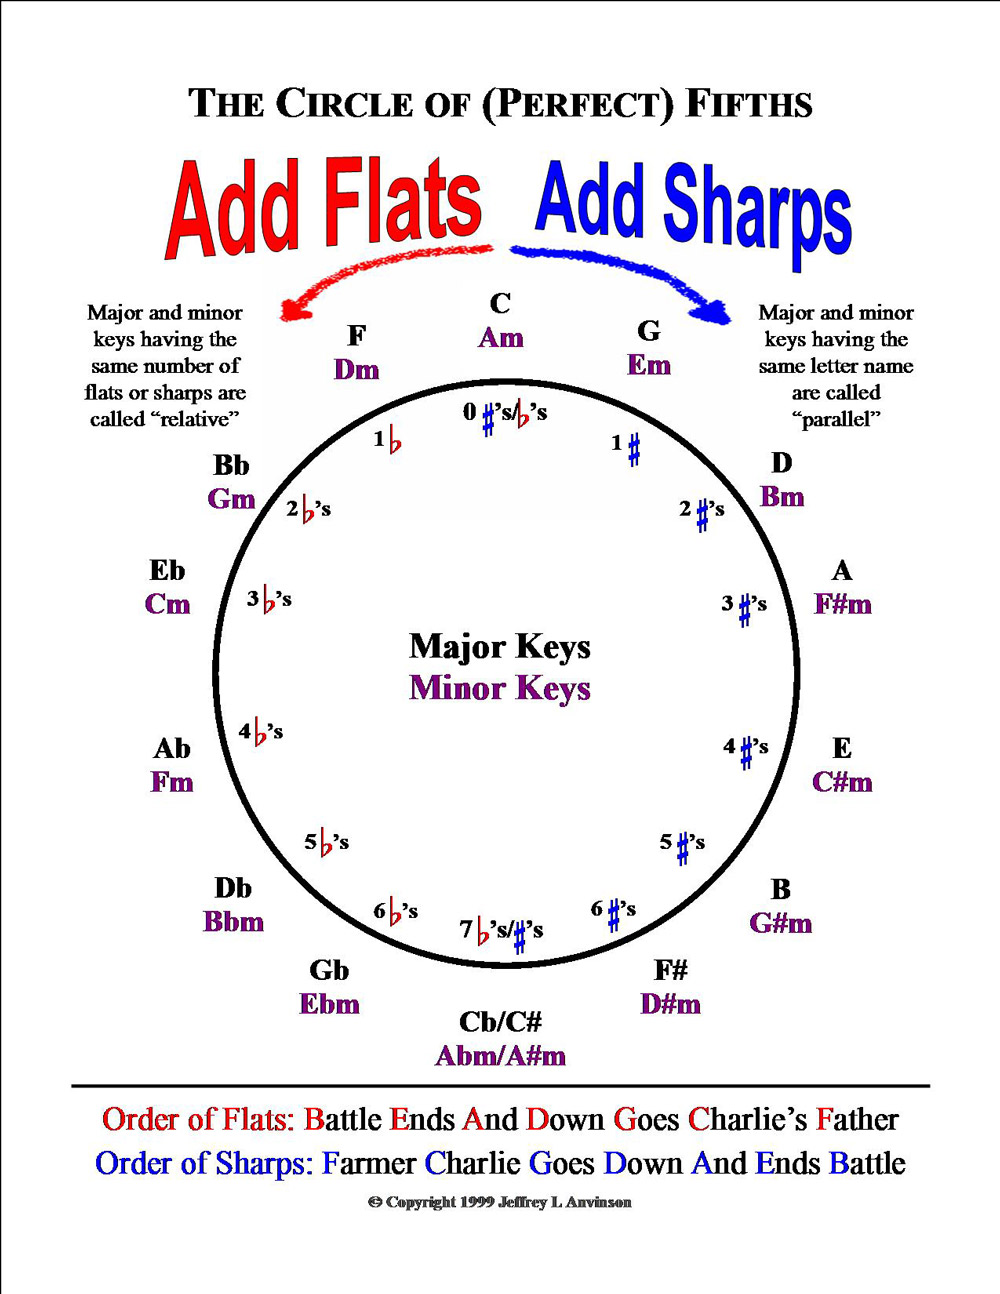 Circle of Fifths created by Jeff Anvinson. Copyright Jeff Anvinson